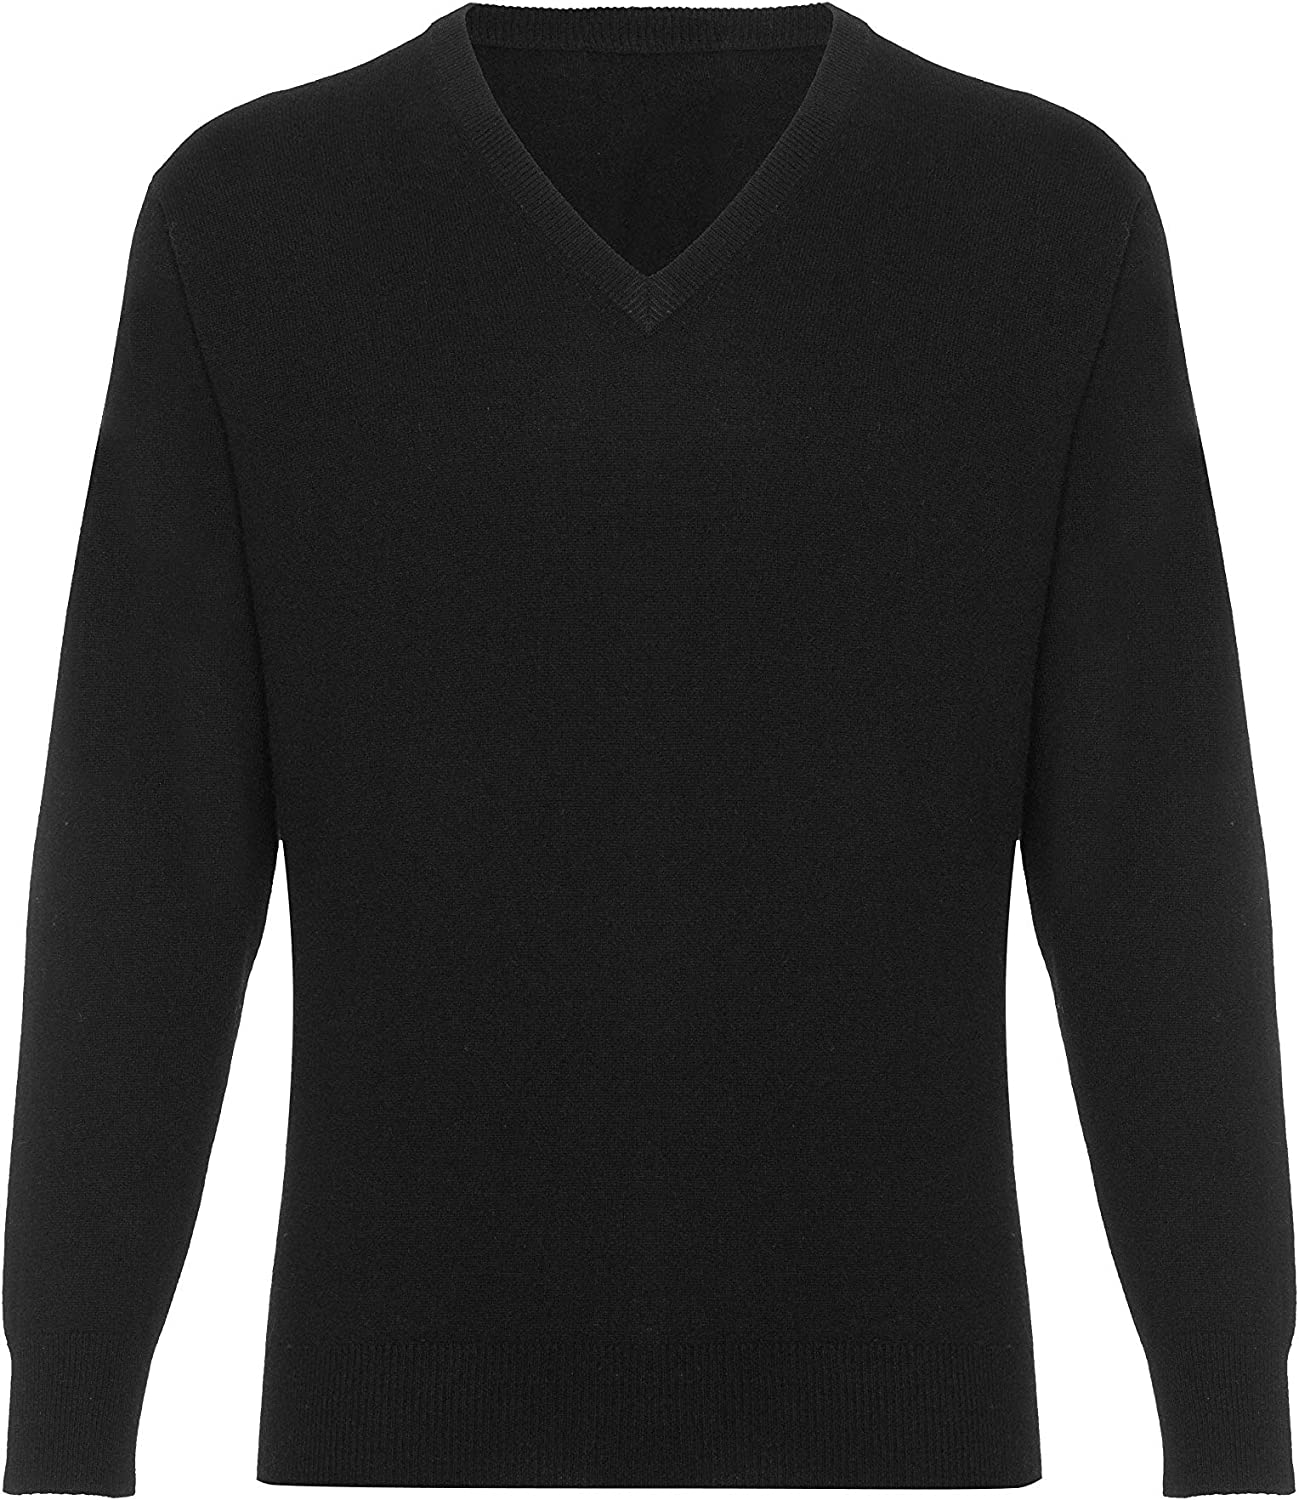 Lona Scott Men's Cashmere V Neck Sweater